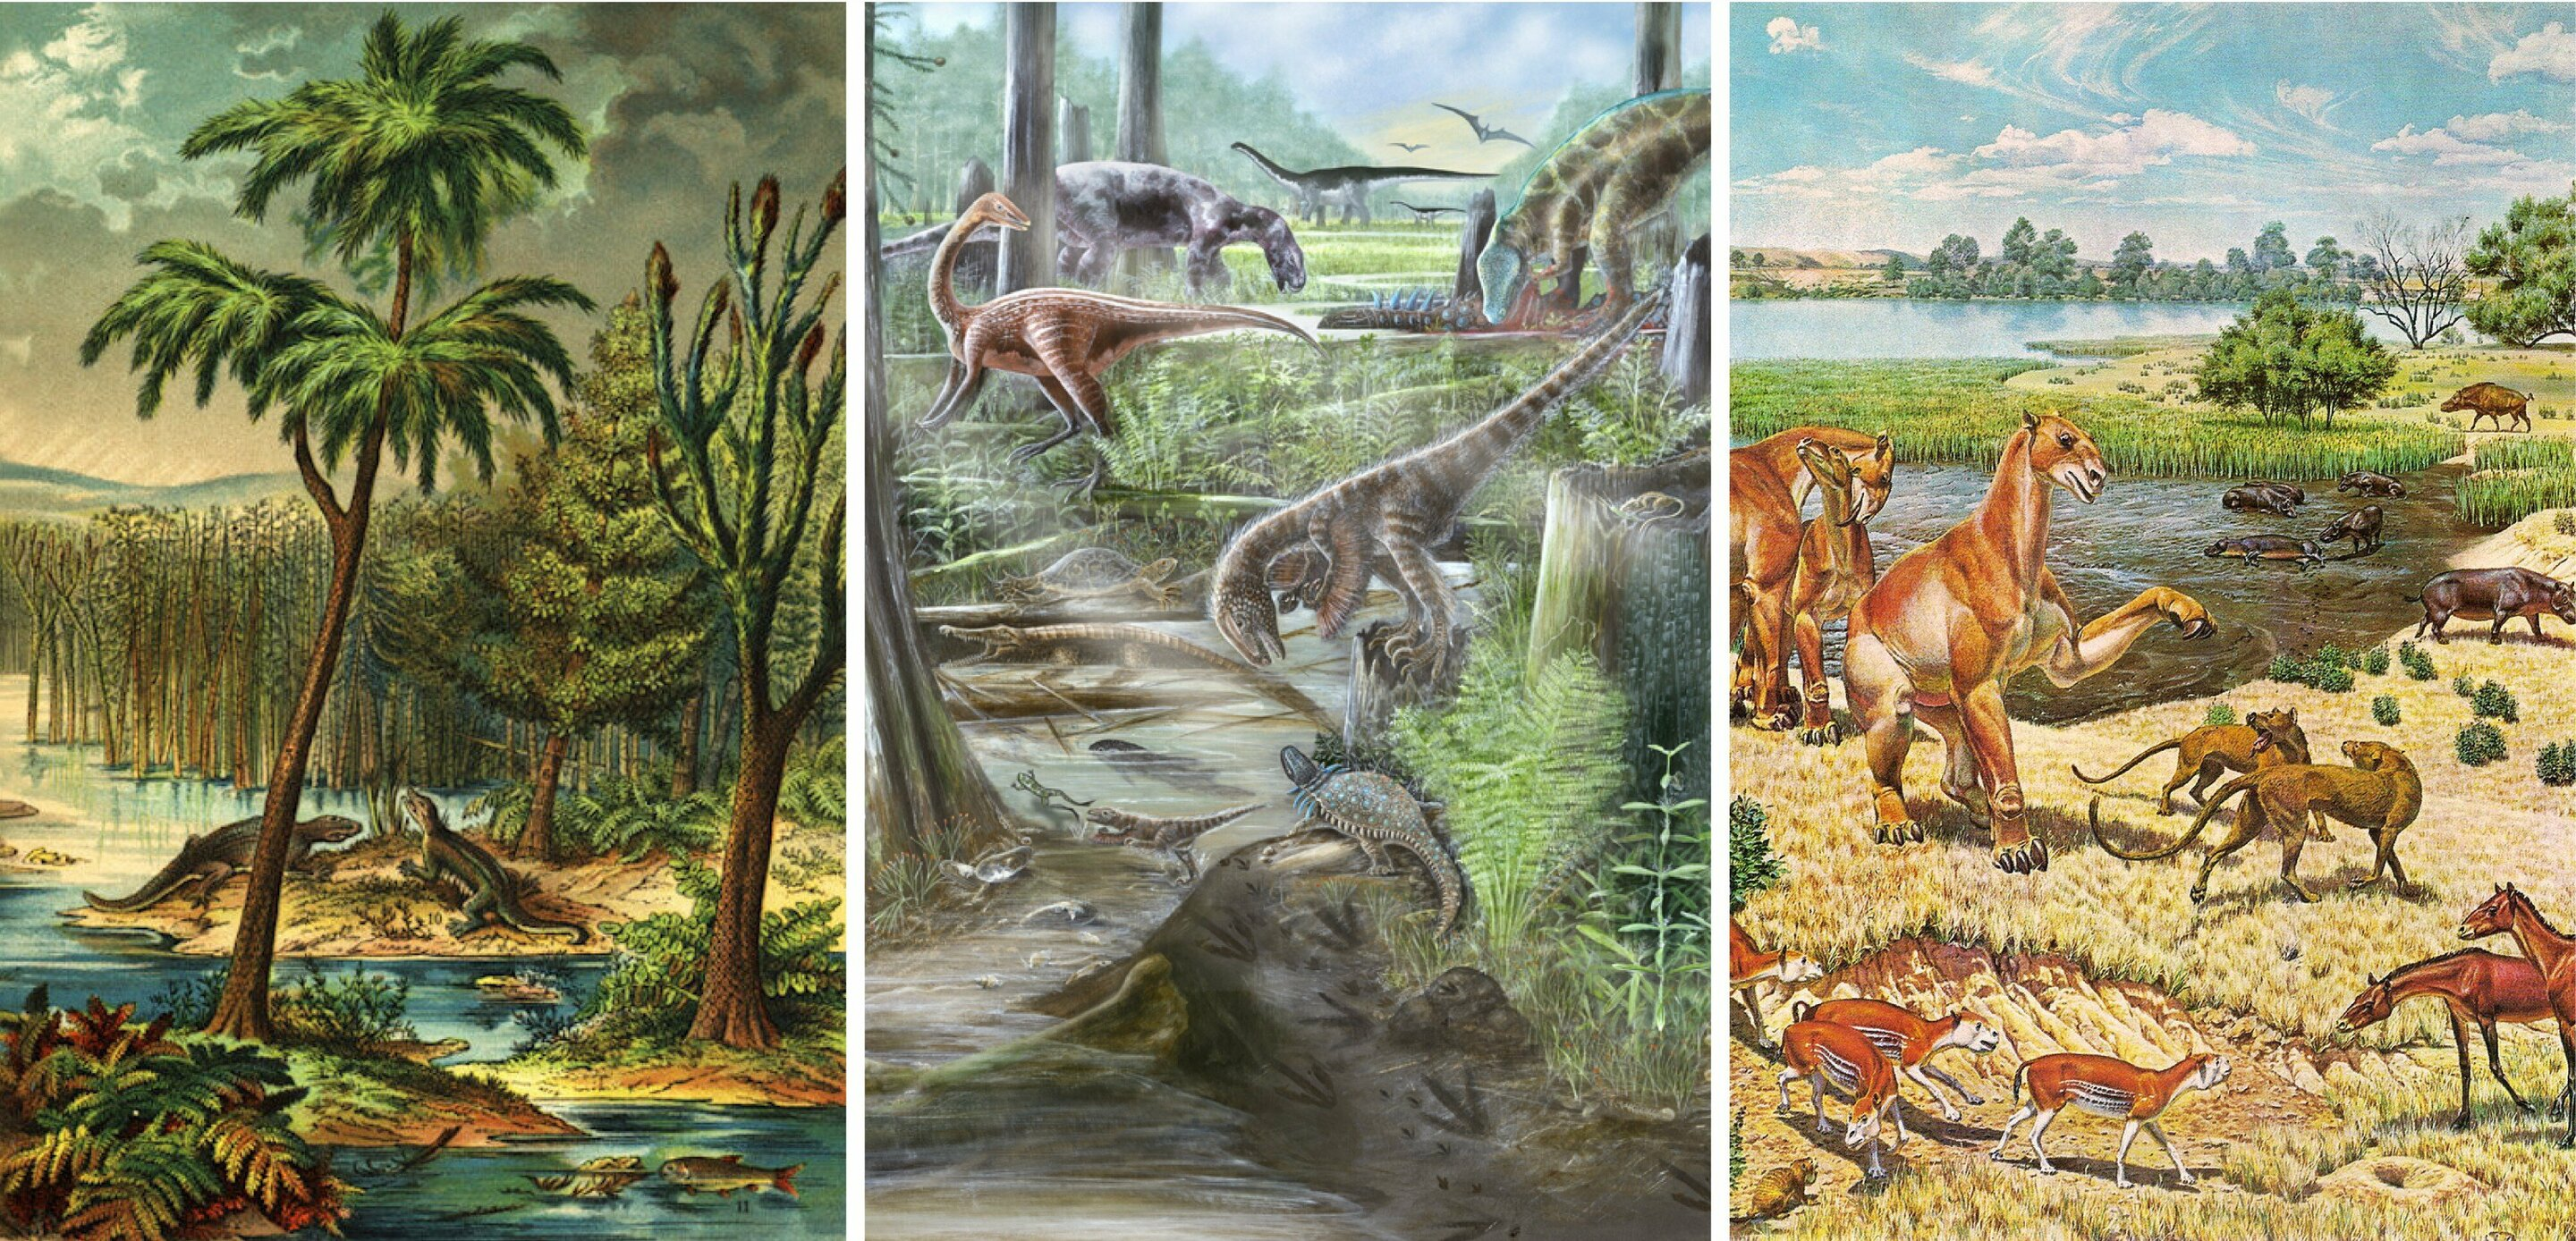 The diversity of life on Earth has not changed since the dinosaurs